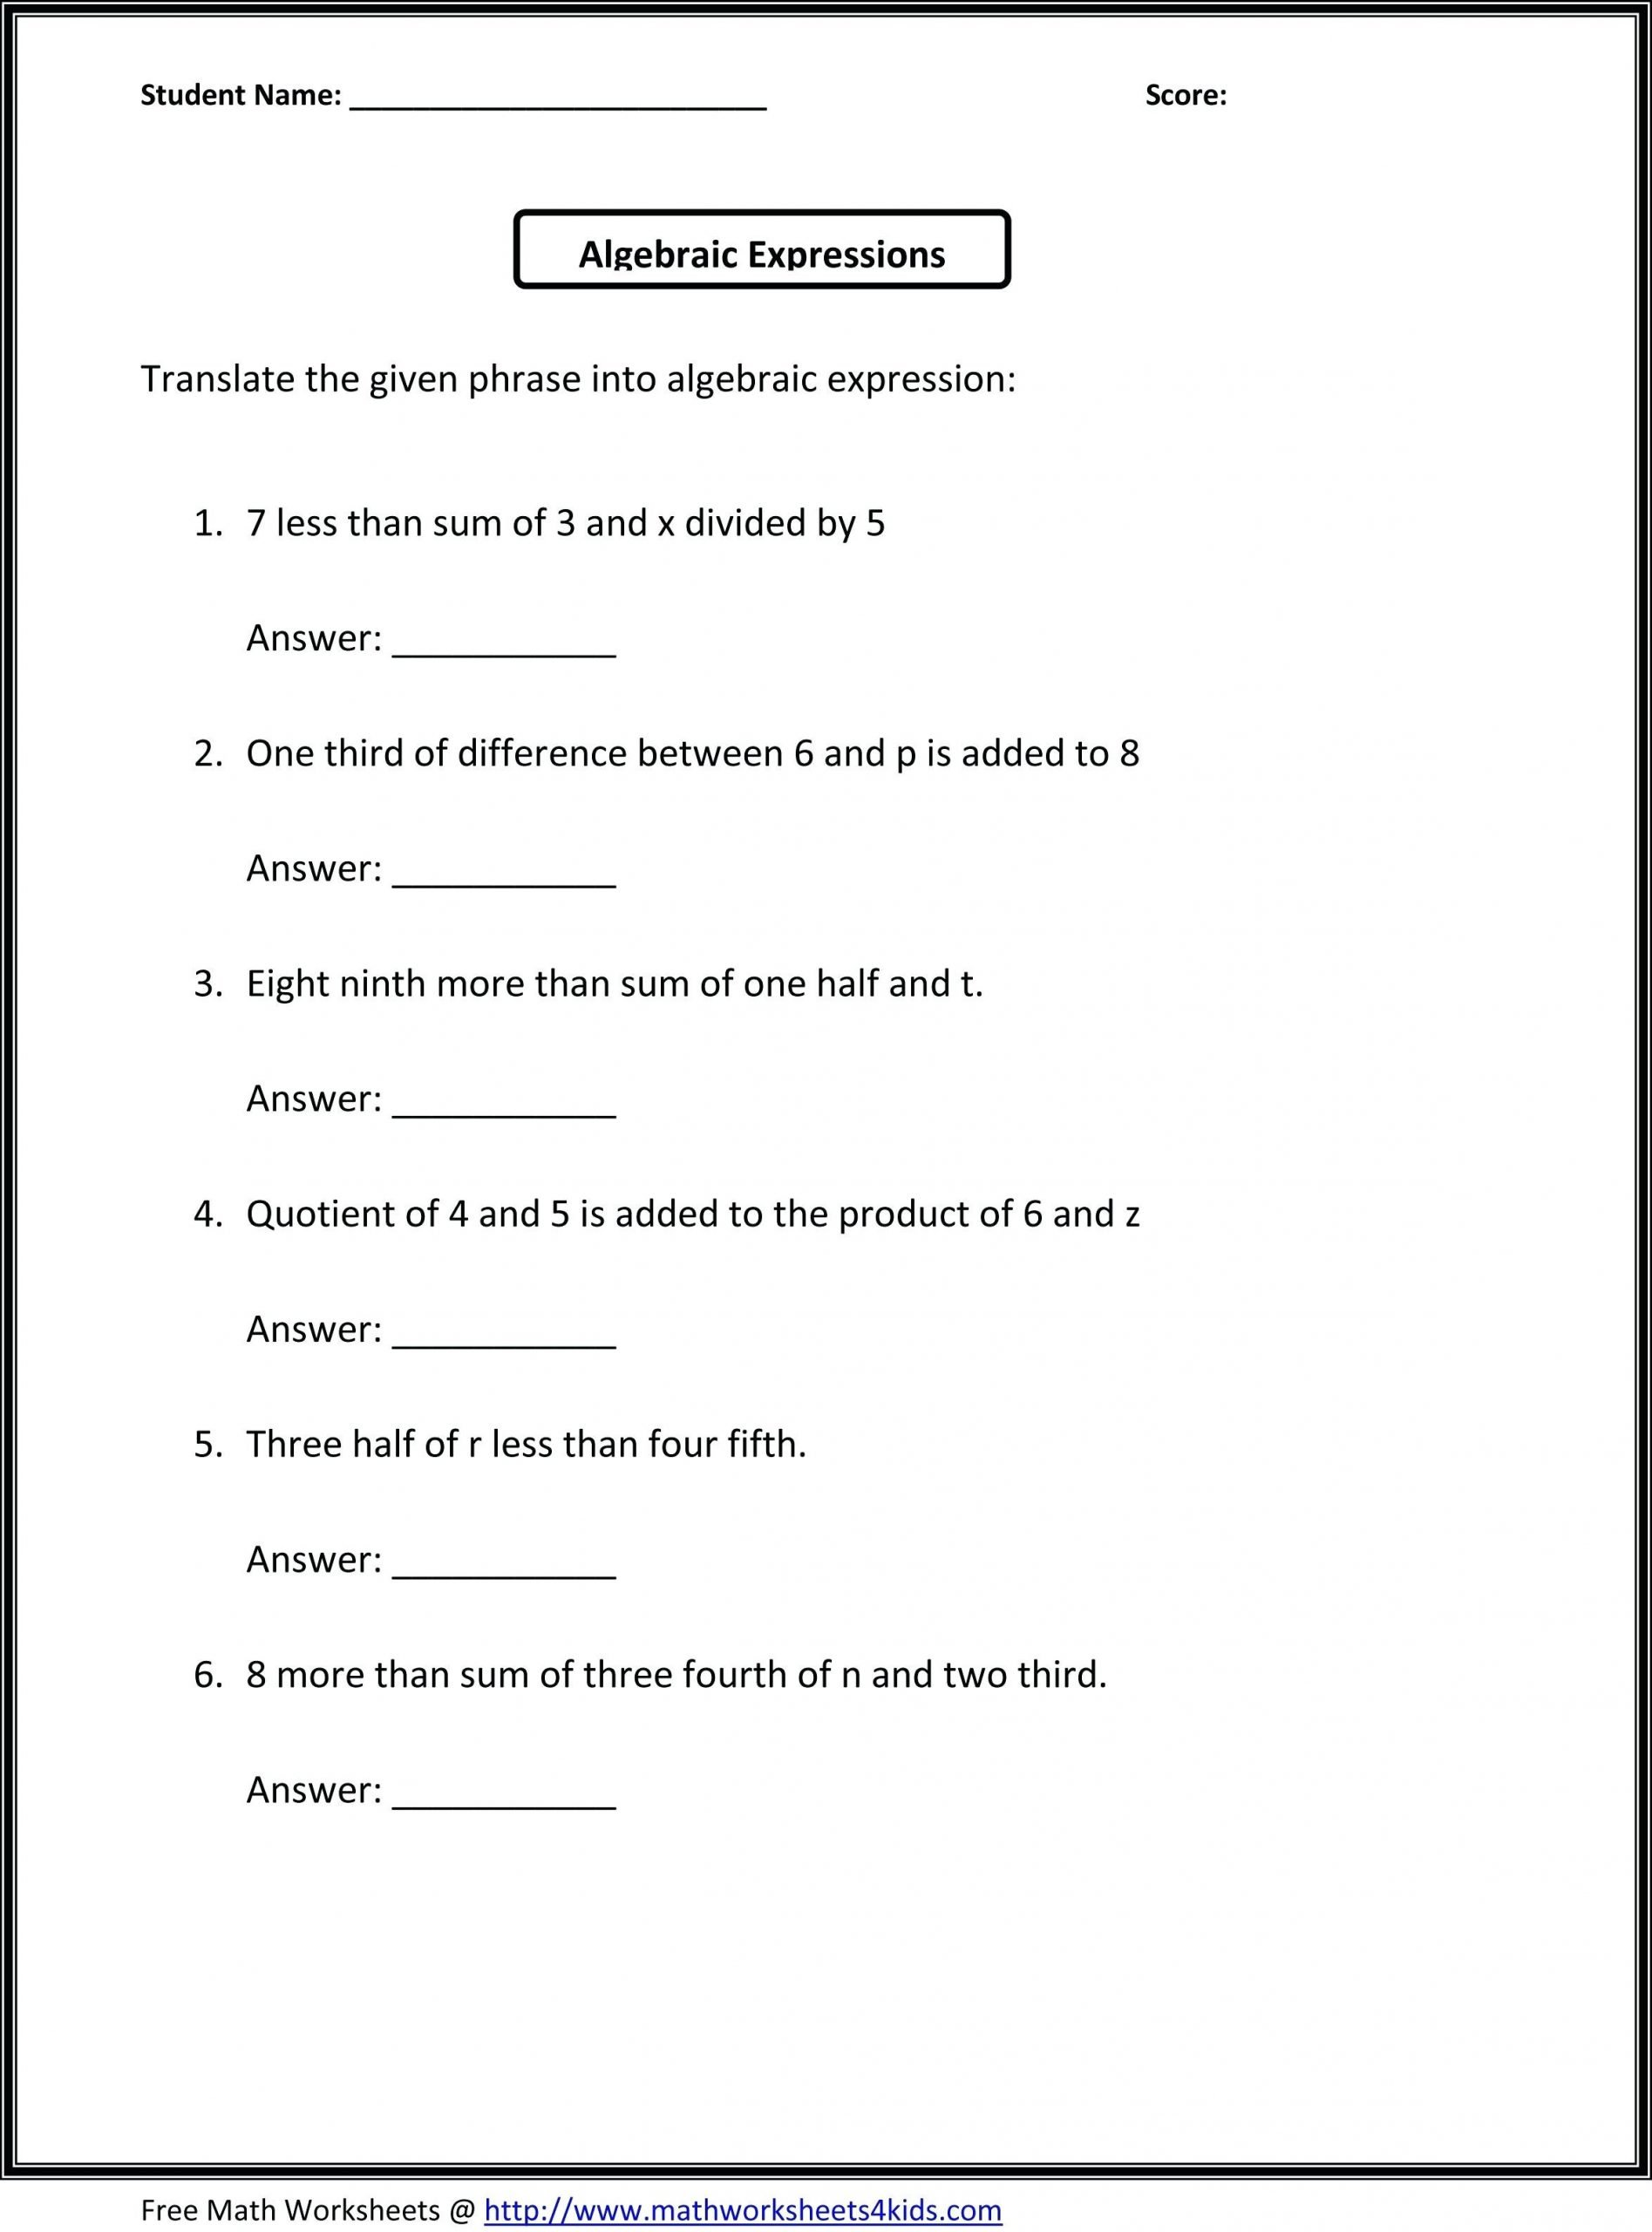 Compatible Numbers Division Worksheets Patible Numbers Worksheets 5th Grade